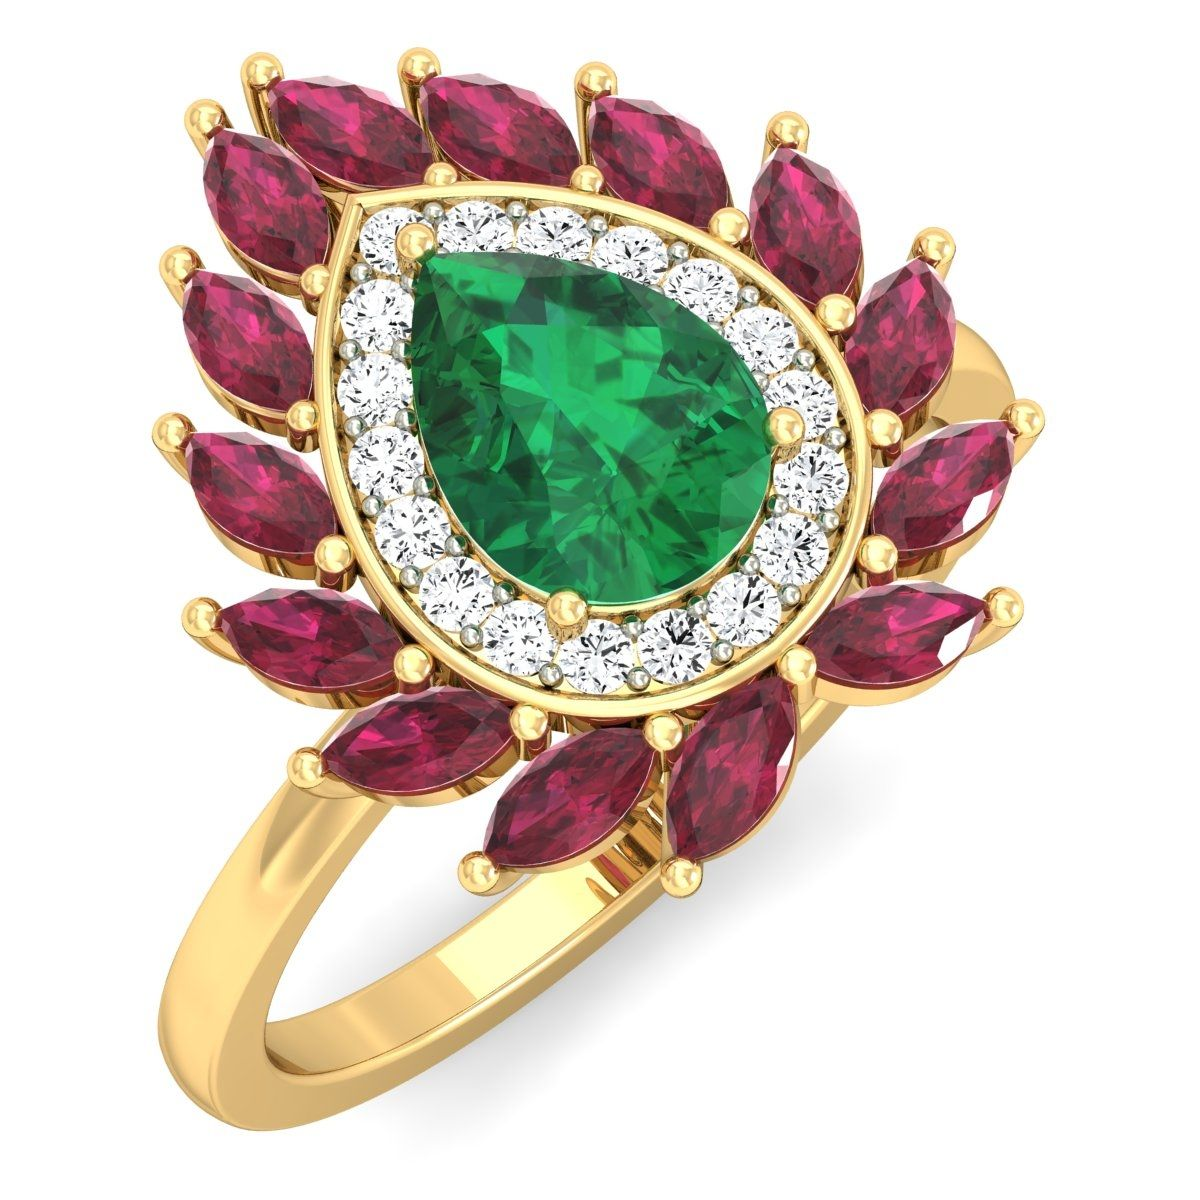 Adorn yourself with beautiful red fire #emerald #rings to mark your bright presence. Buy this ring from Goldnstone.com with best price, 100% certified, hallmarked, 30 days return policy. Shop Now: https://goo.gl/3oKKHX